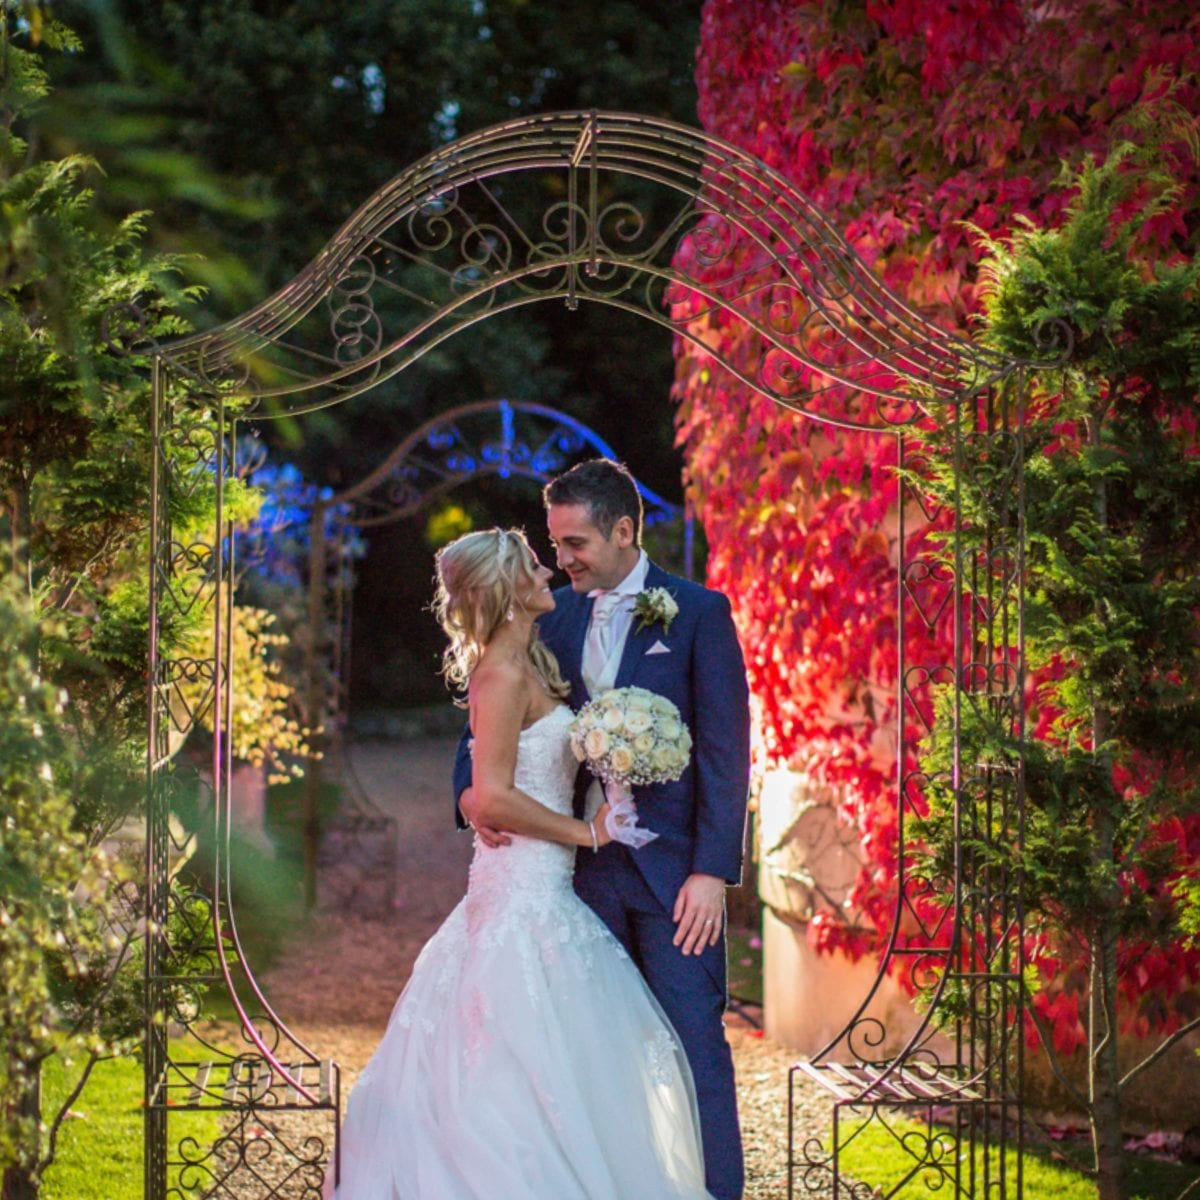 Wedding venues Coventry at Coombe Abbey